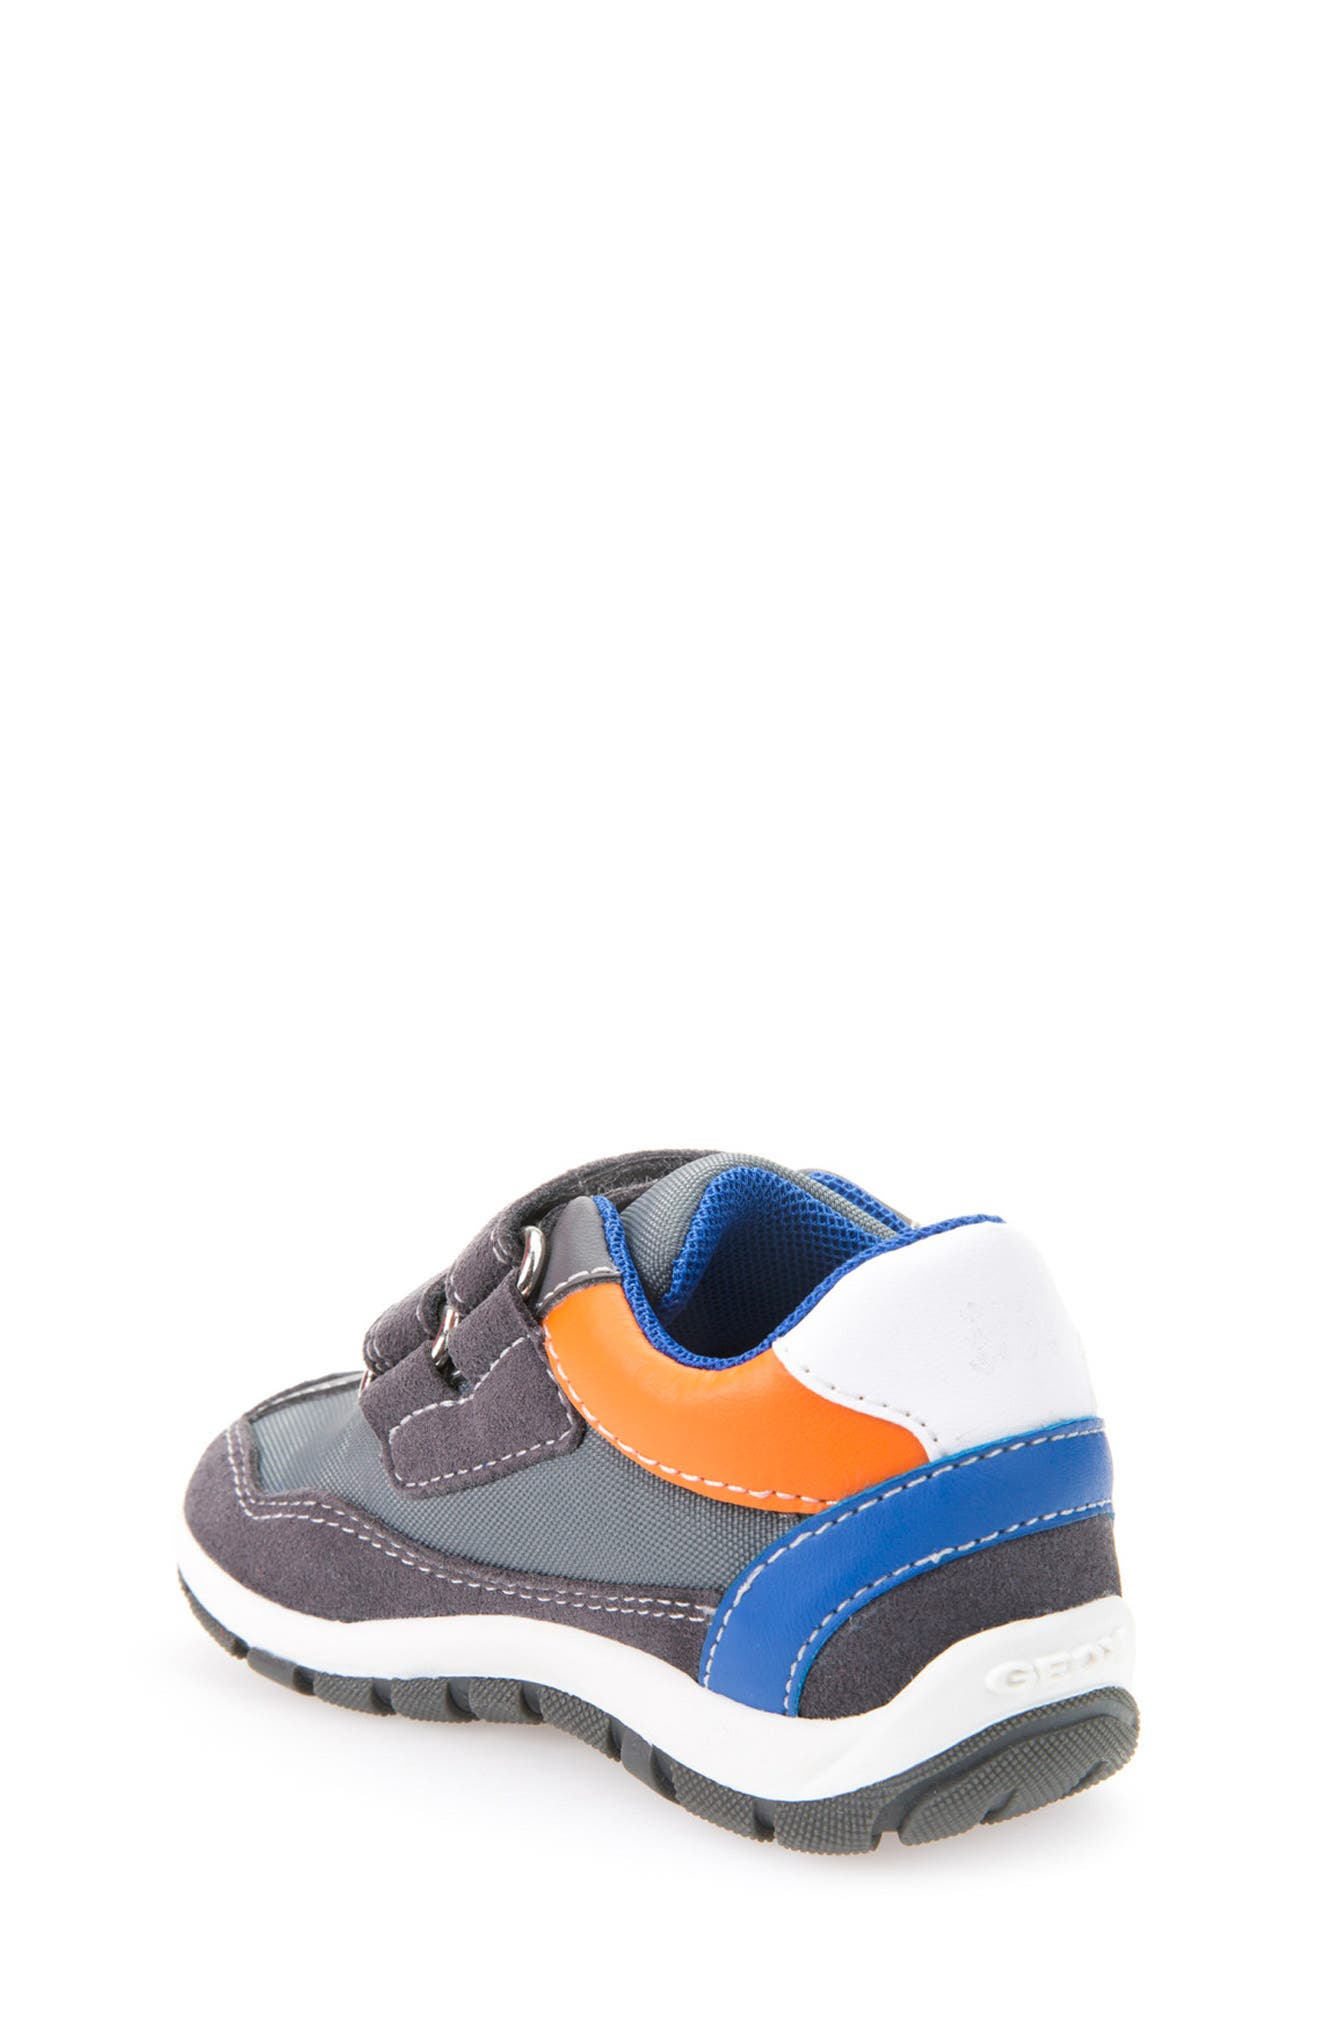 Alternate Image 2  - Geox Shaax Sneaker (Walker & Toddler)